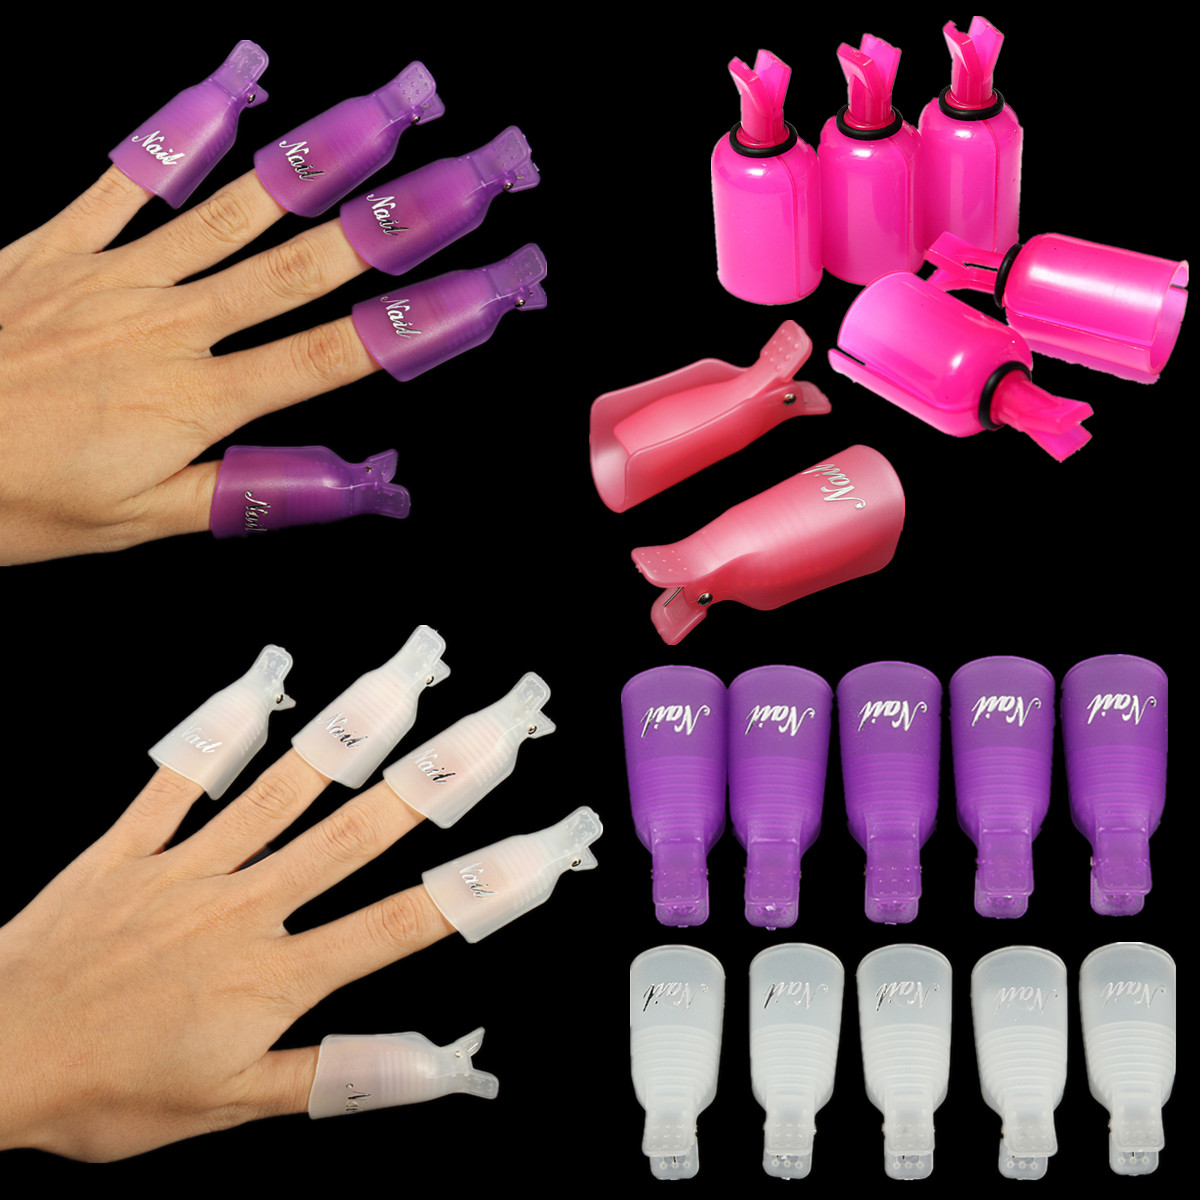 10PC Plastic Acrylic Nail Art Remover Soak Off Cap Clip UV Gel Polish Wrap Tools,White color